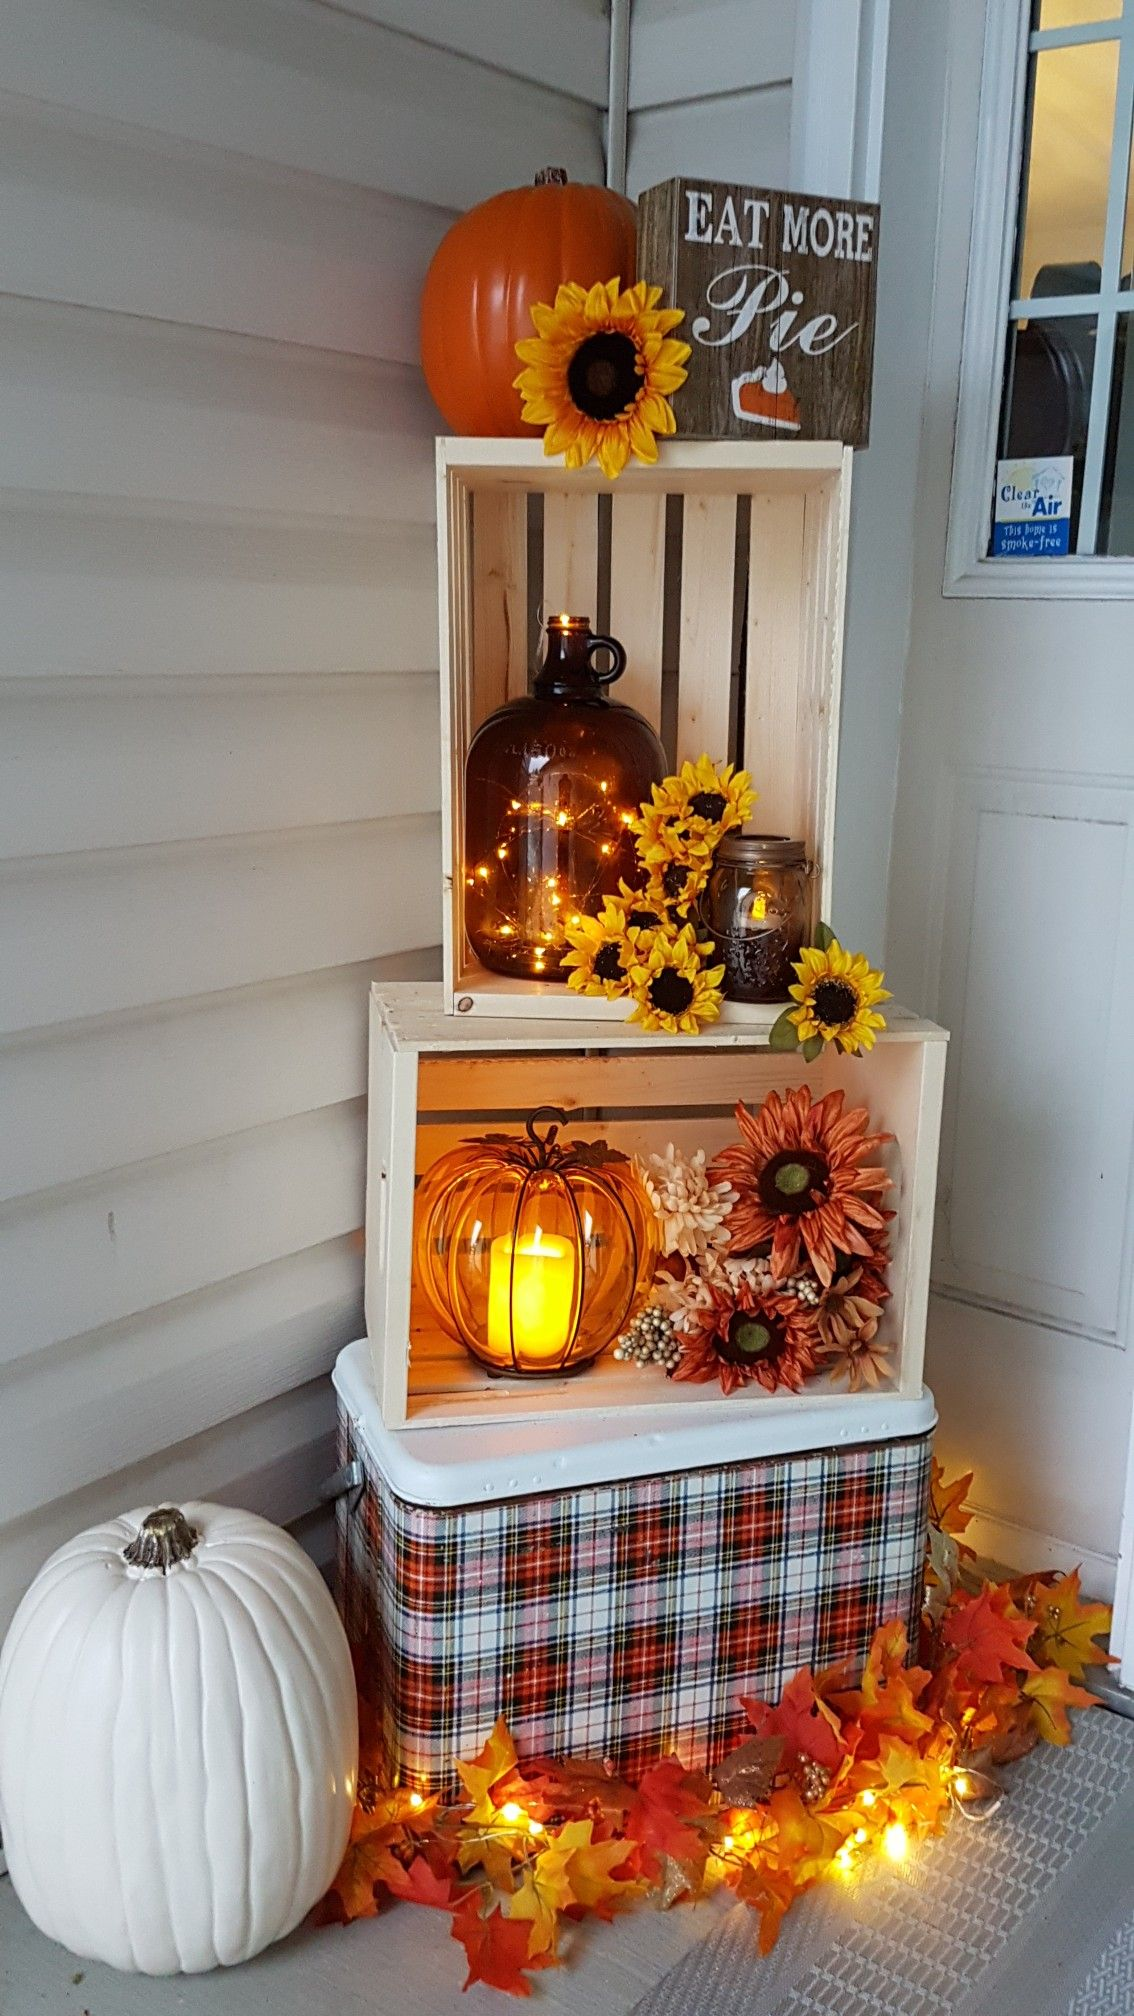 3 Home Decor Trends For Spring Brittany Stager: Autumn Entry Way Display Crates Fall Leaves Pumpkin Plaid